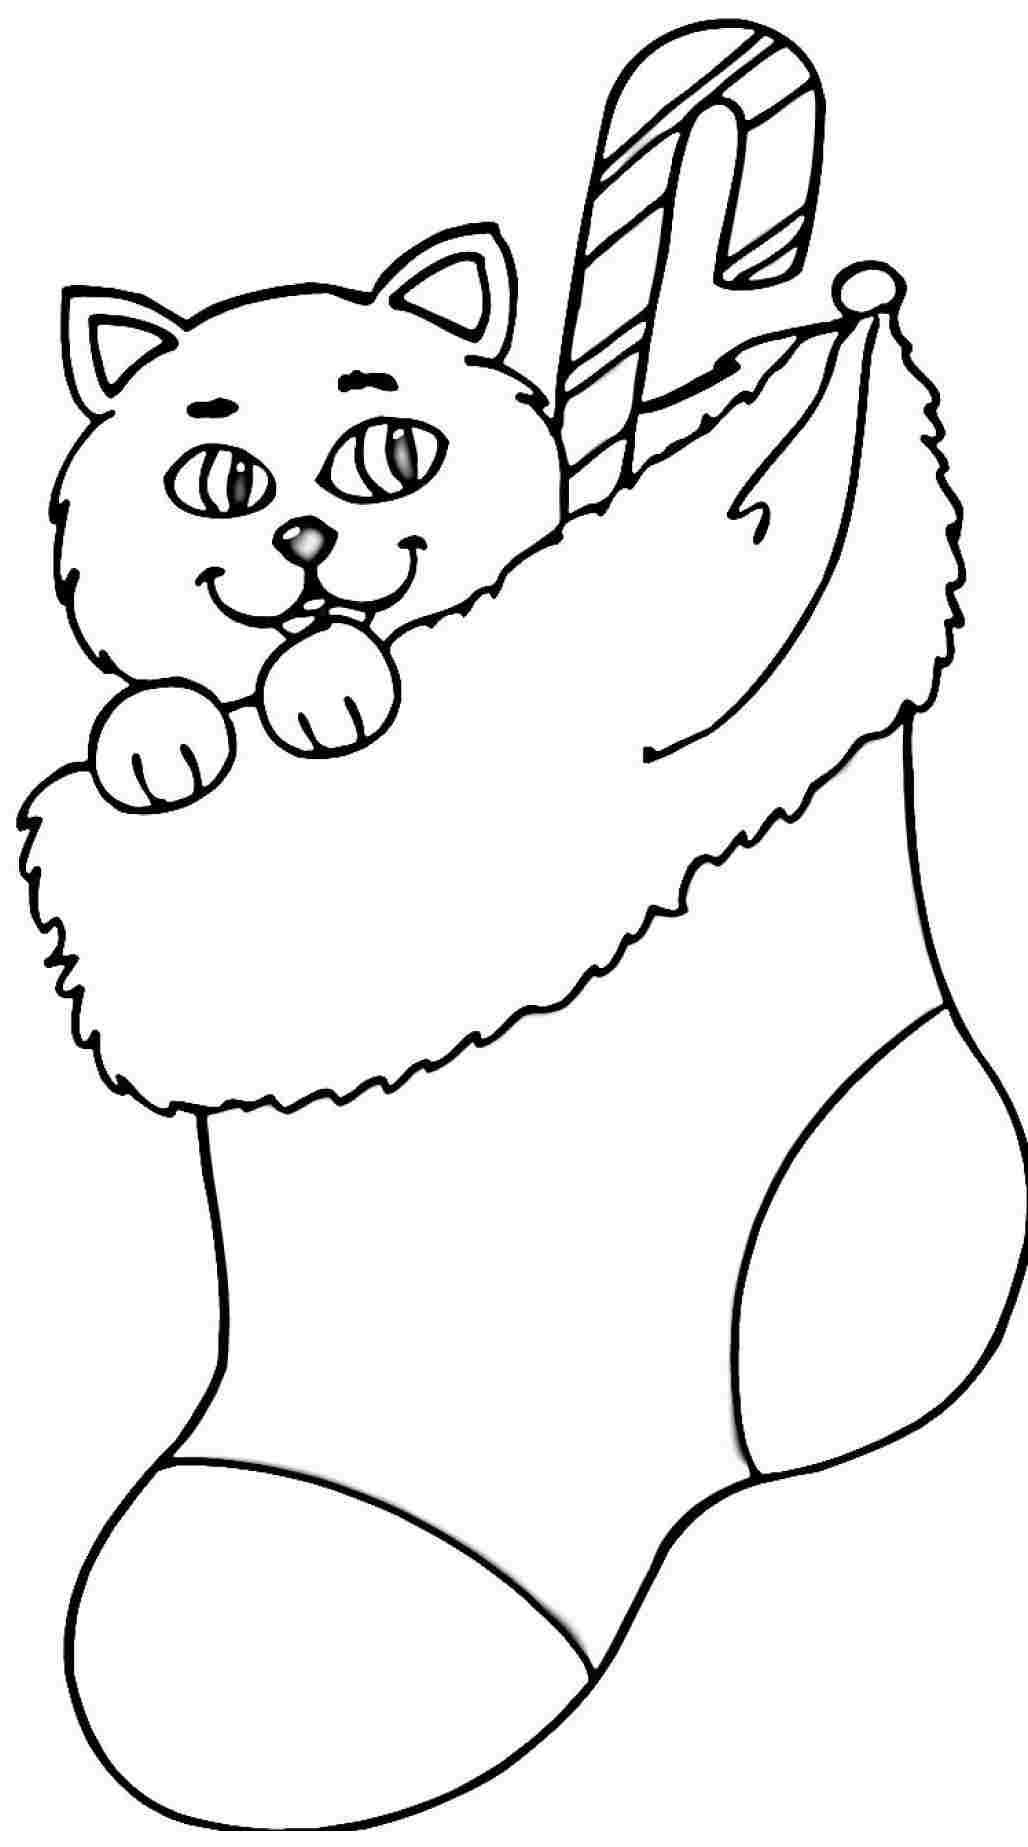 Free Printable Christmas Stocking Coloring Pages, Download Free ... | 1847x1028